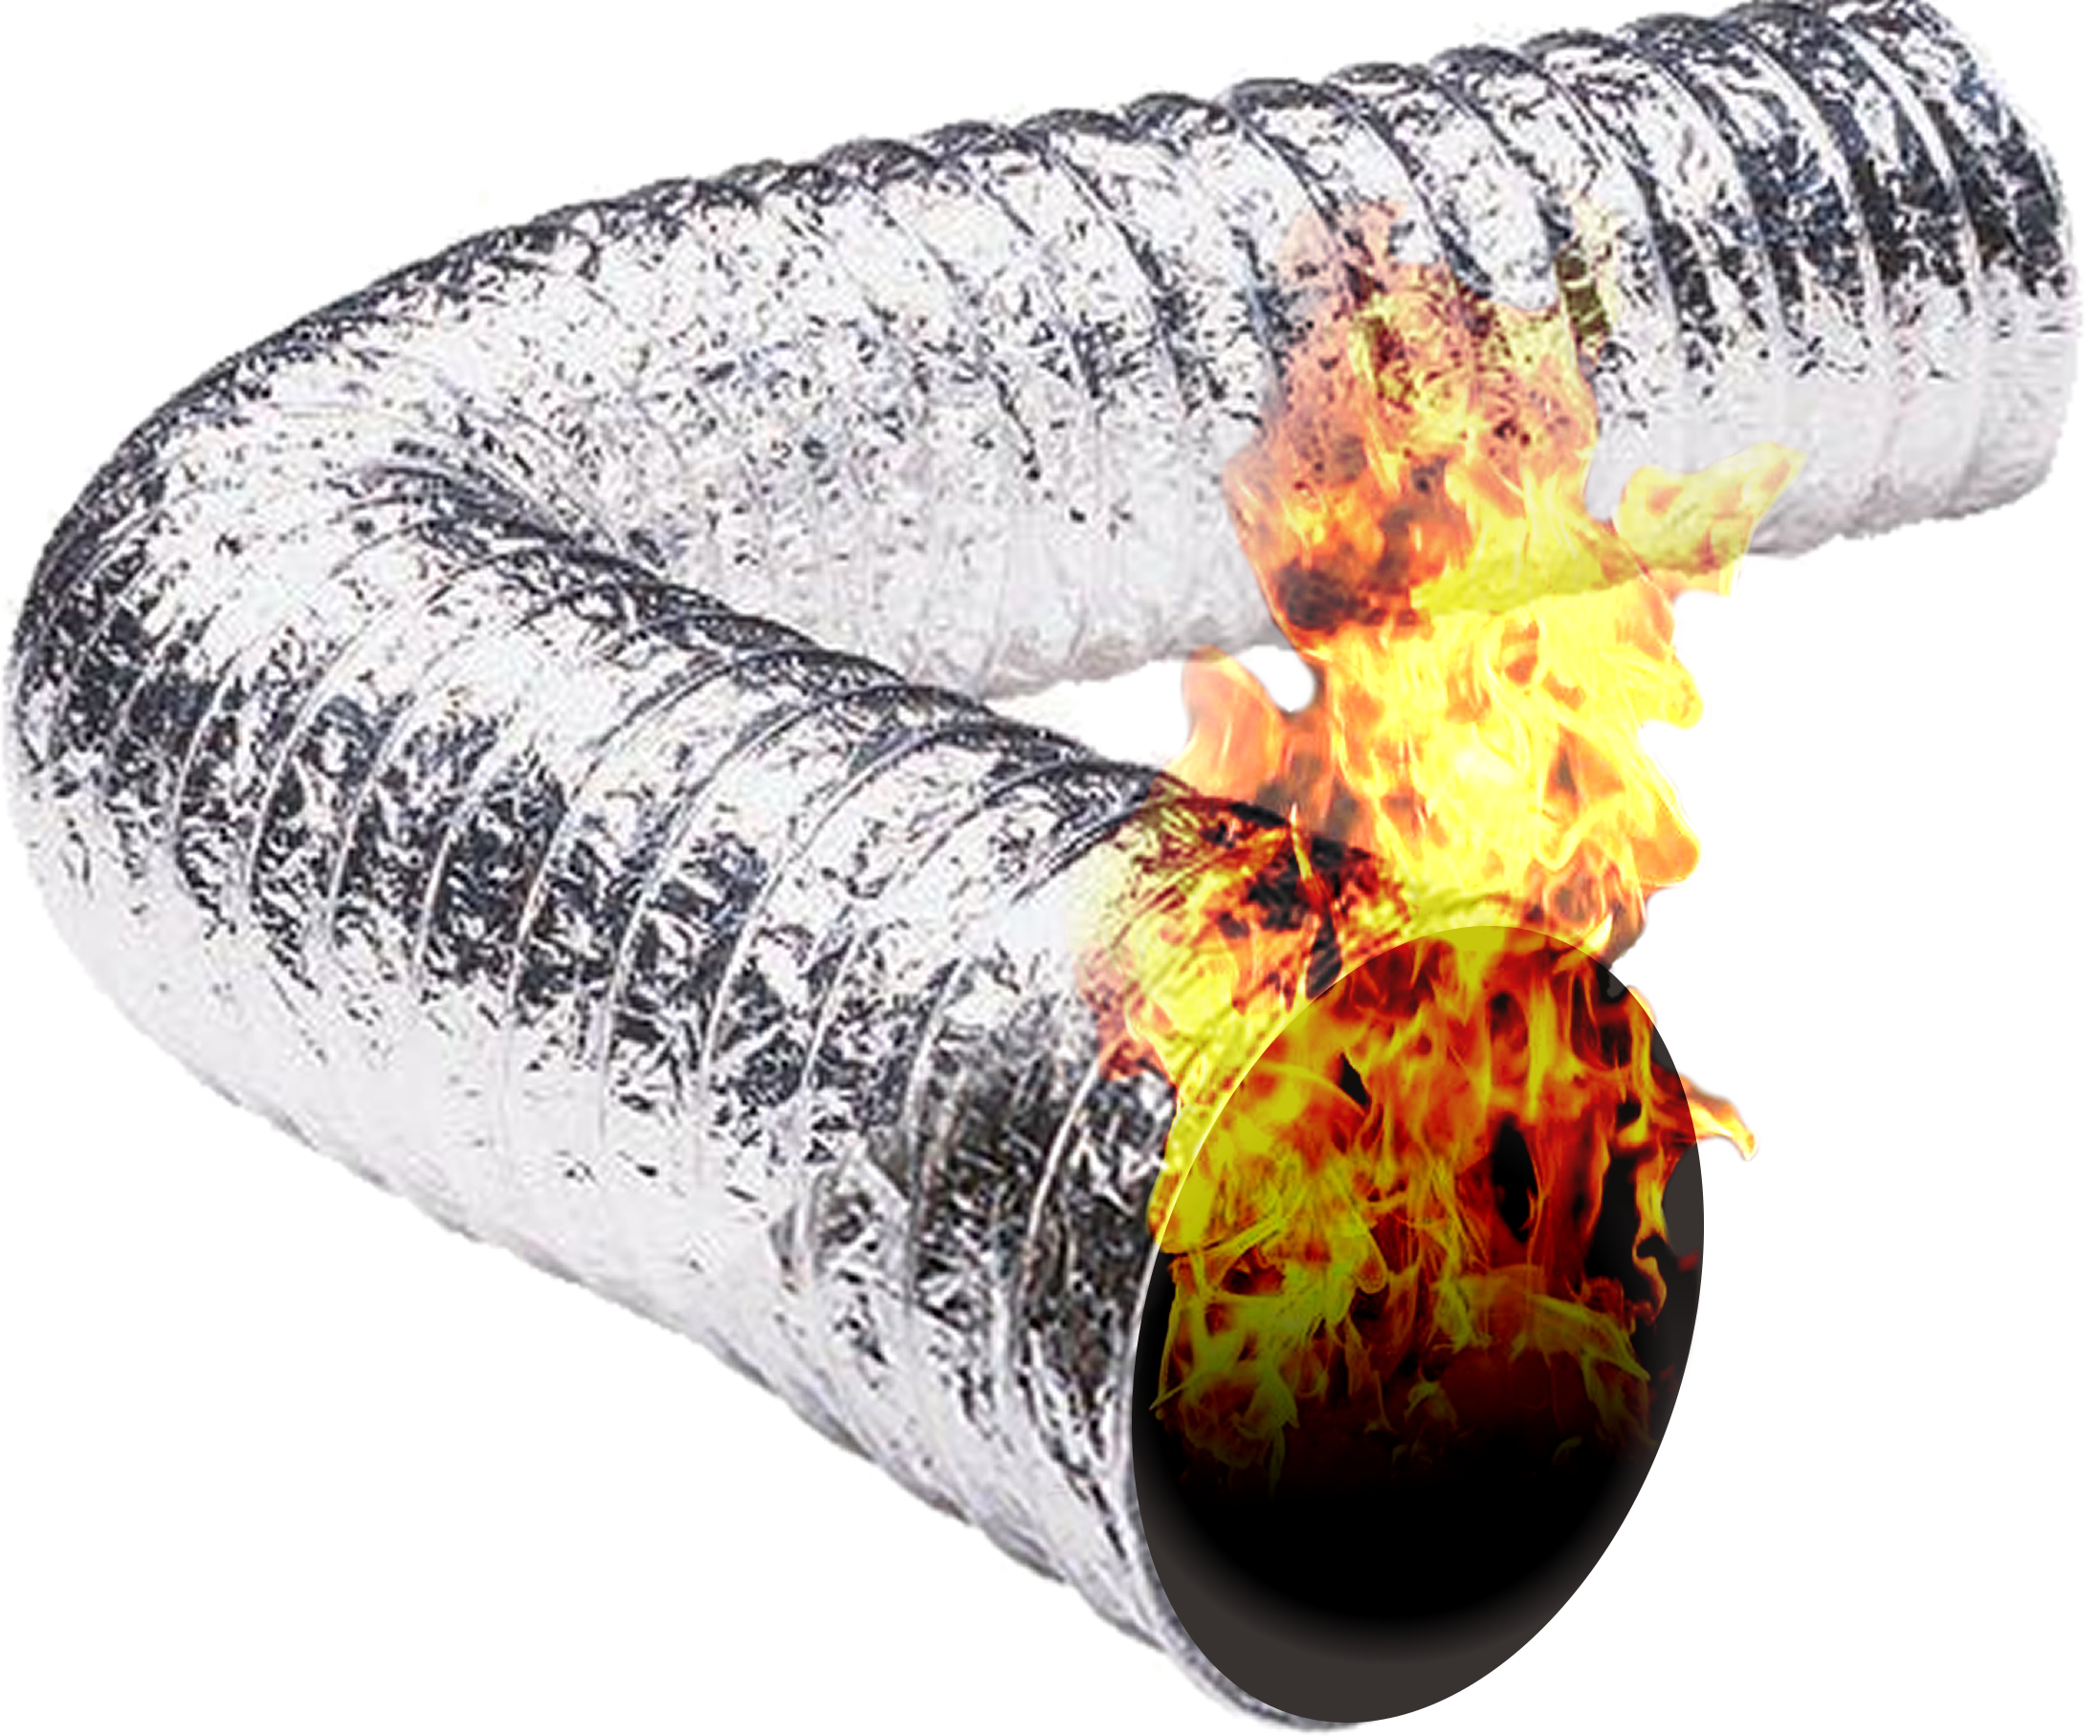 1000+ images about Dryer Vent Cleaning on Pinterest.